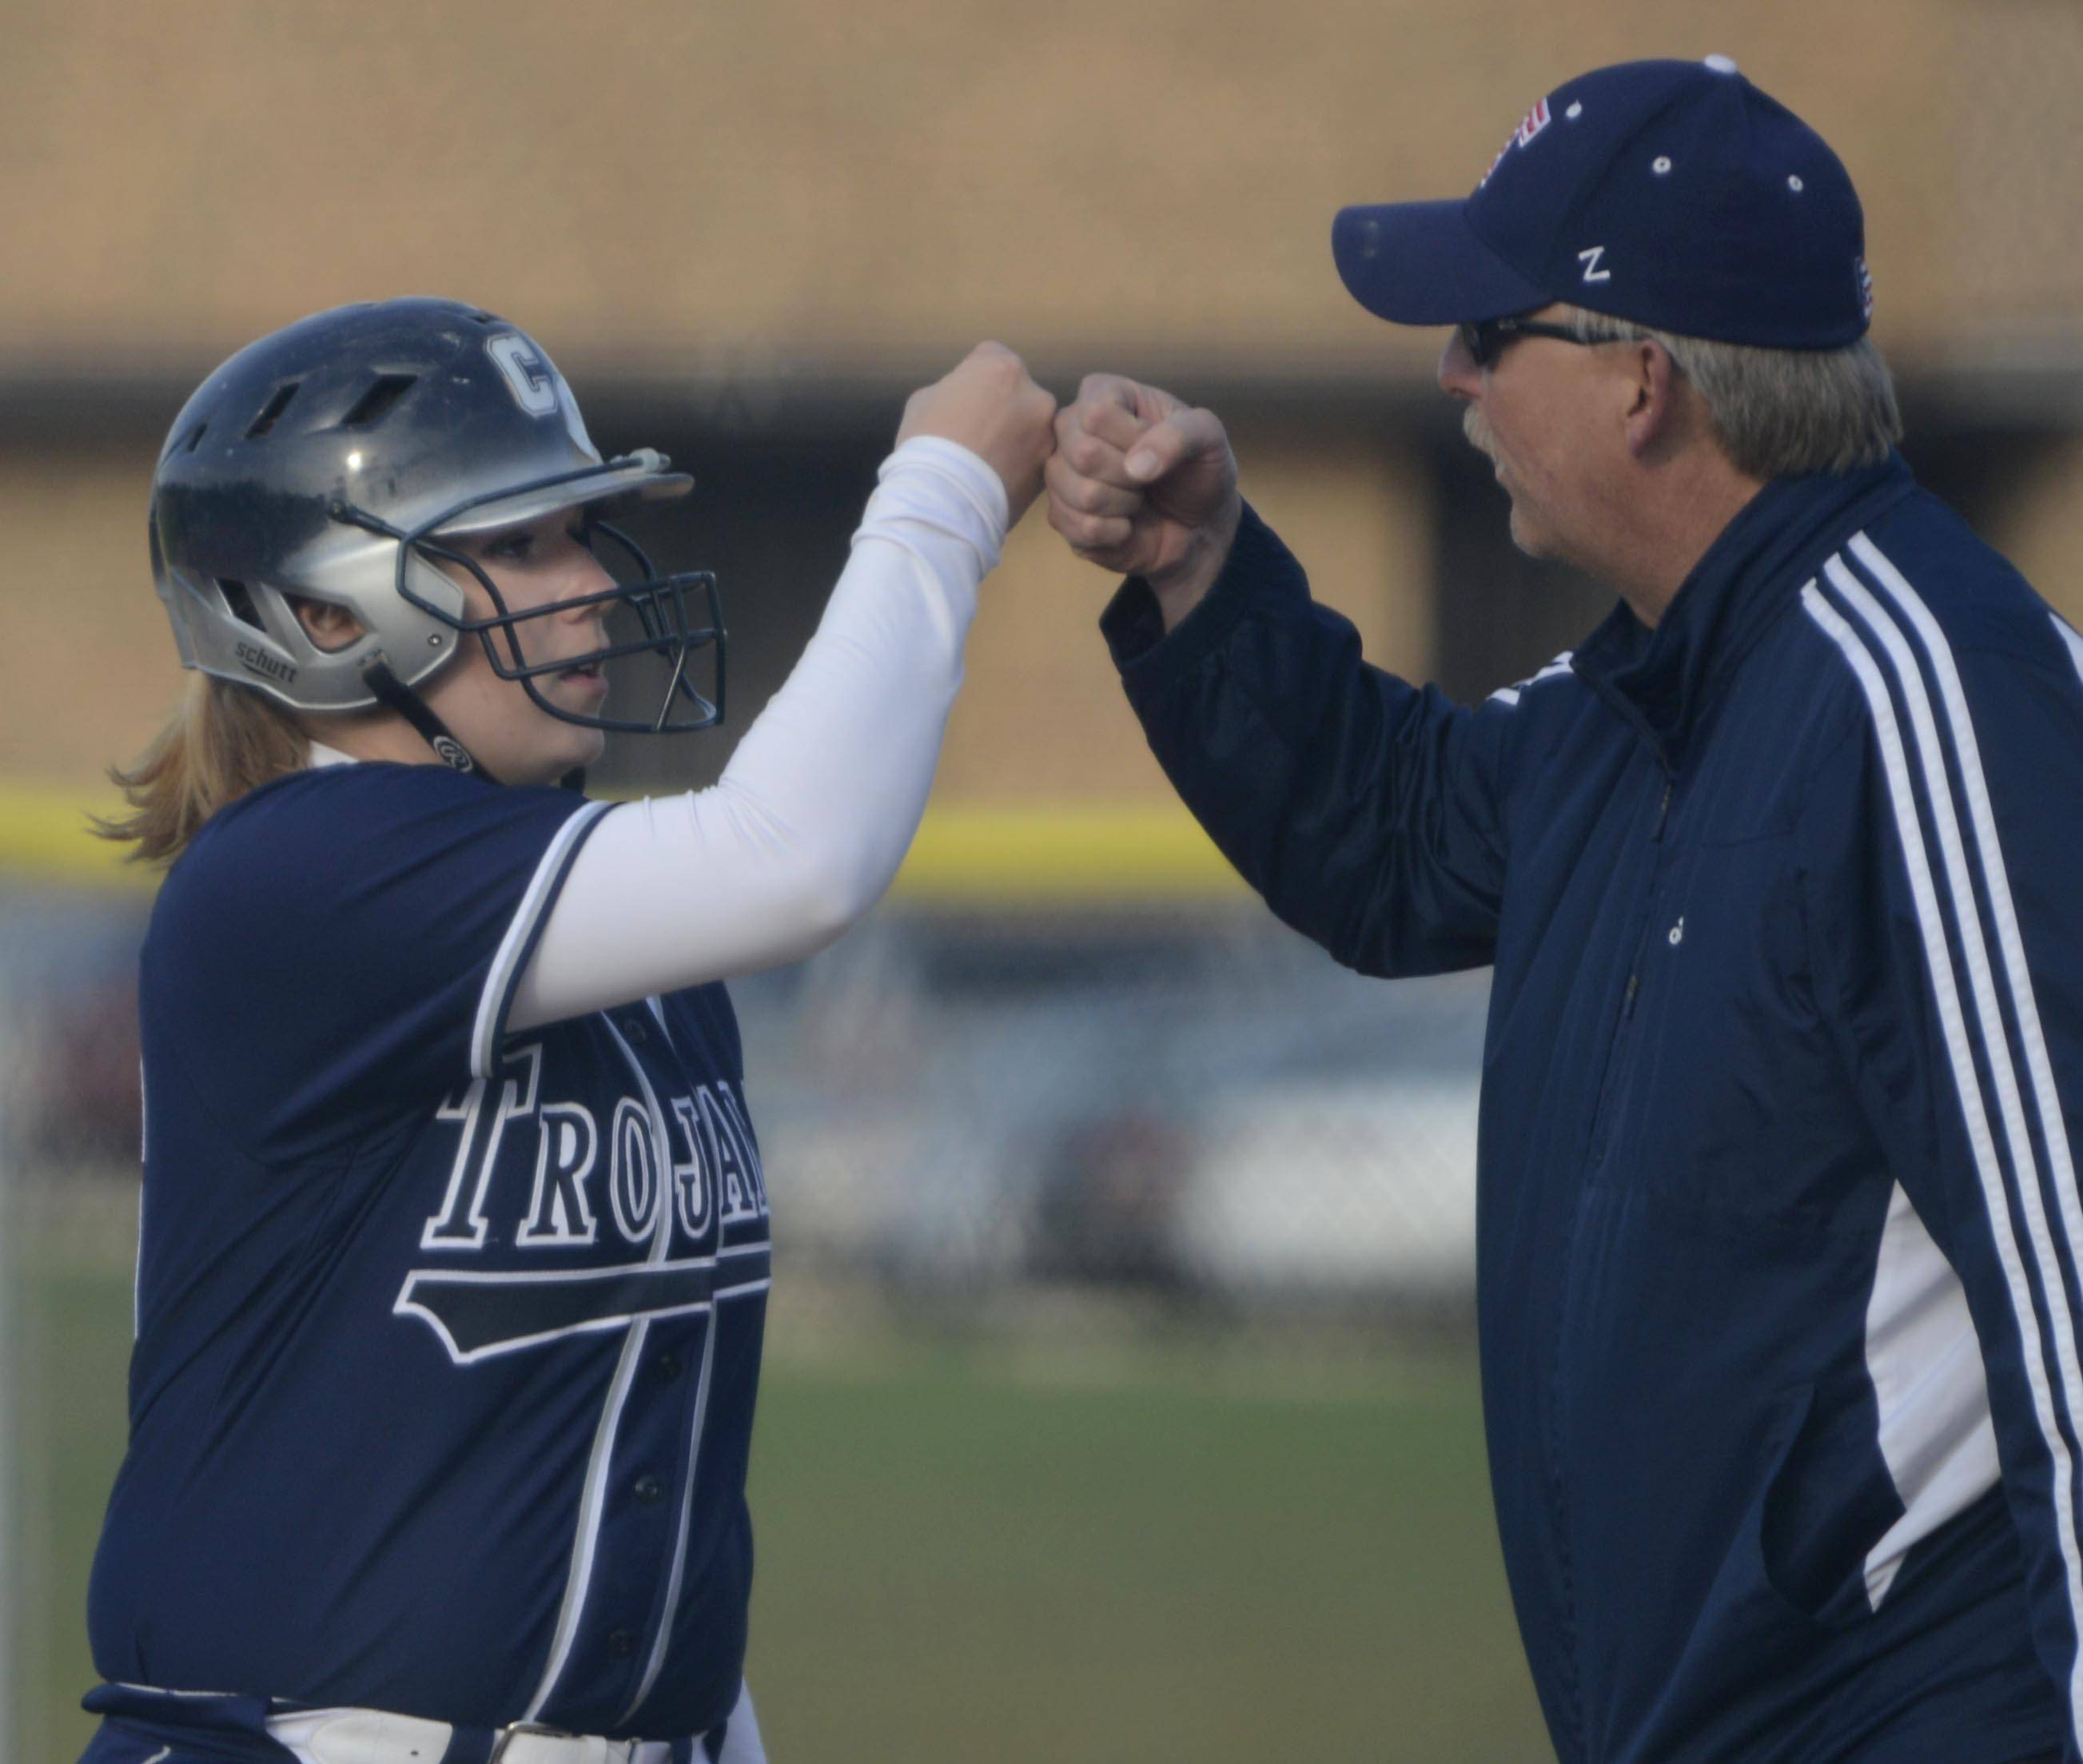 Cary-Grove's Amanda DeGroote is congratulated on her 2-RBI basehit against Jacobs in the fifth inning by assistant coach Mark Olson Tuesday in Cary.